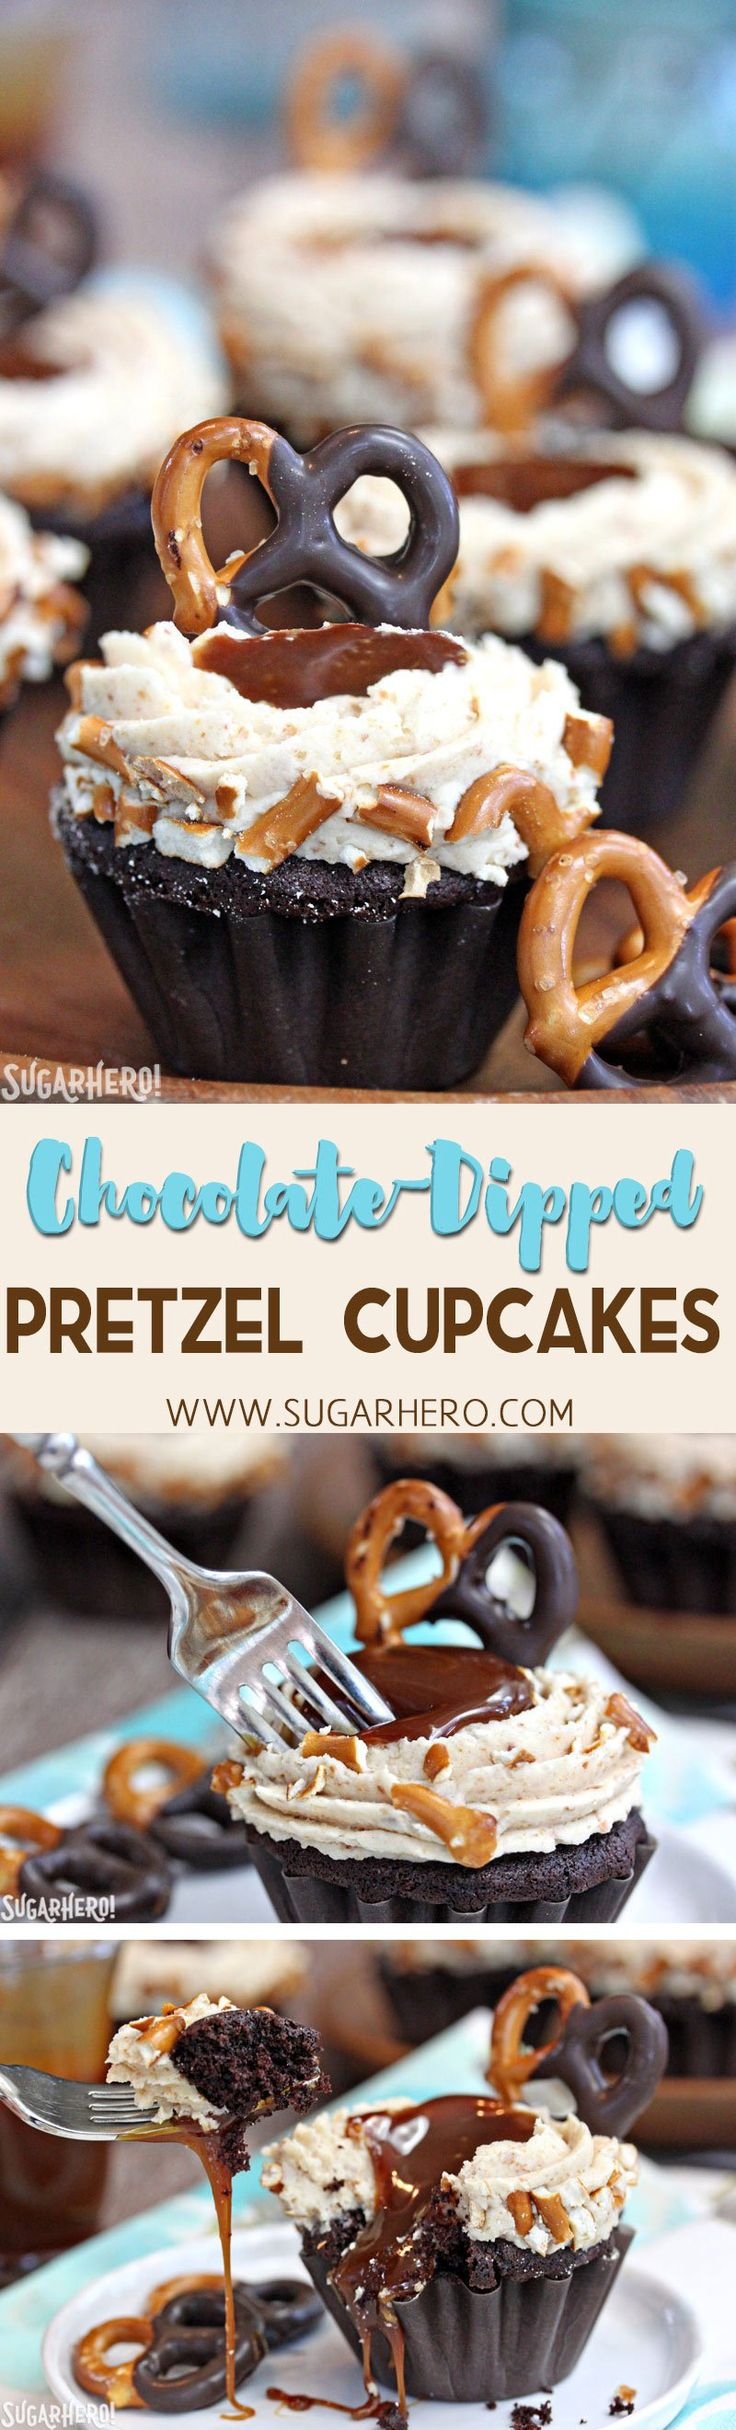 Best 20+ Chocolate dipped pretzels ideas on Pinterest | Baby ...